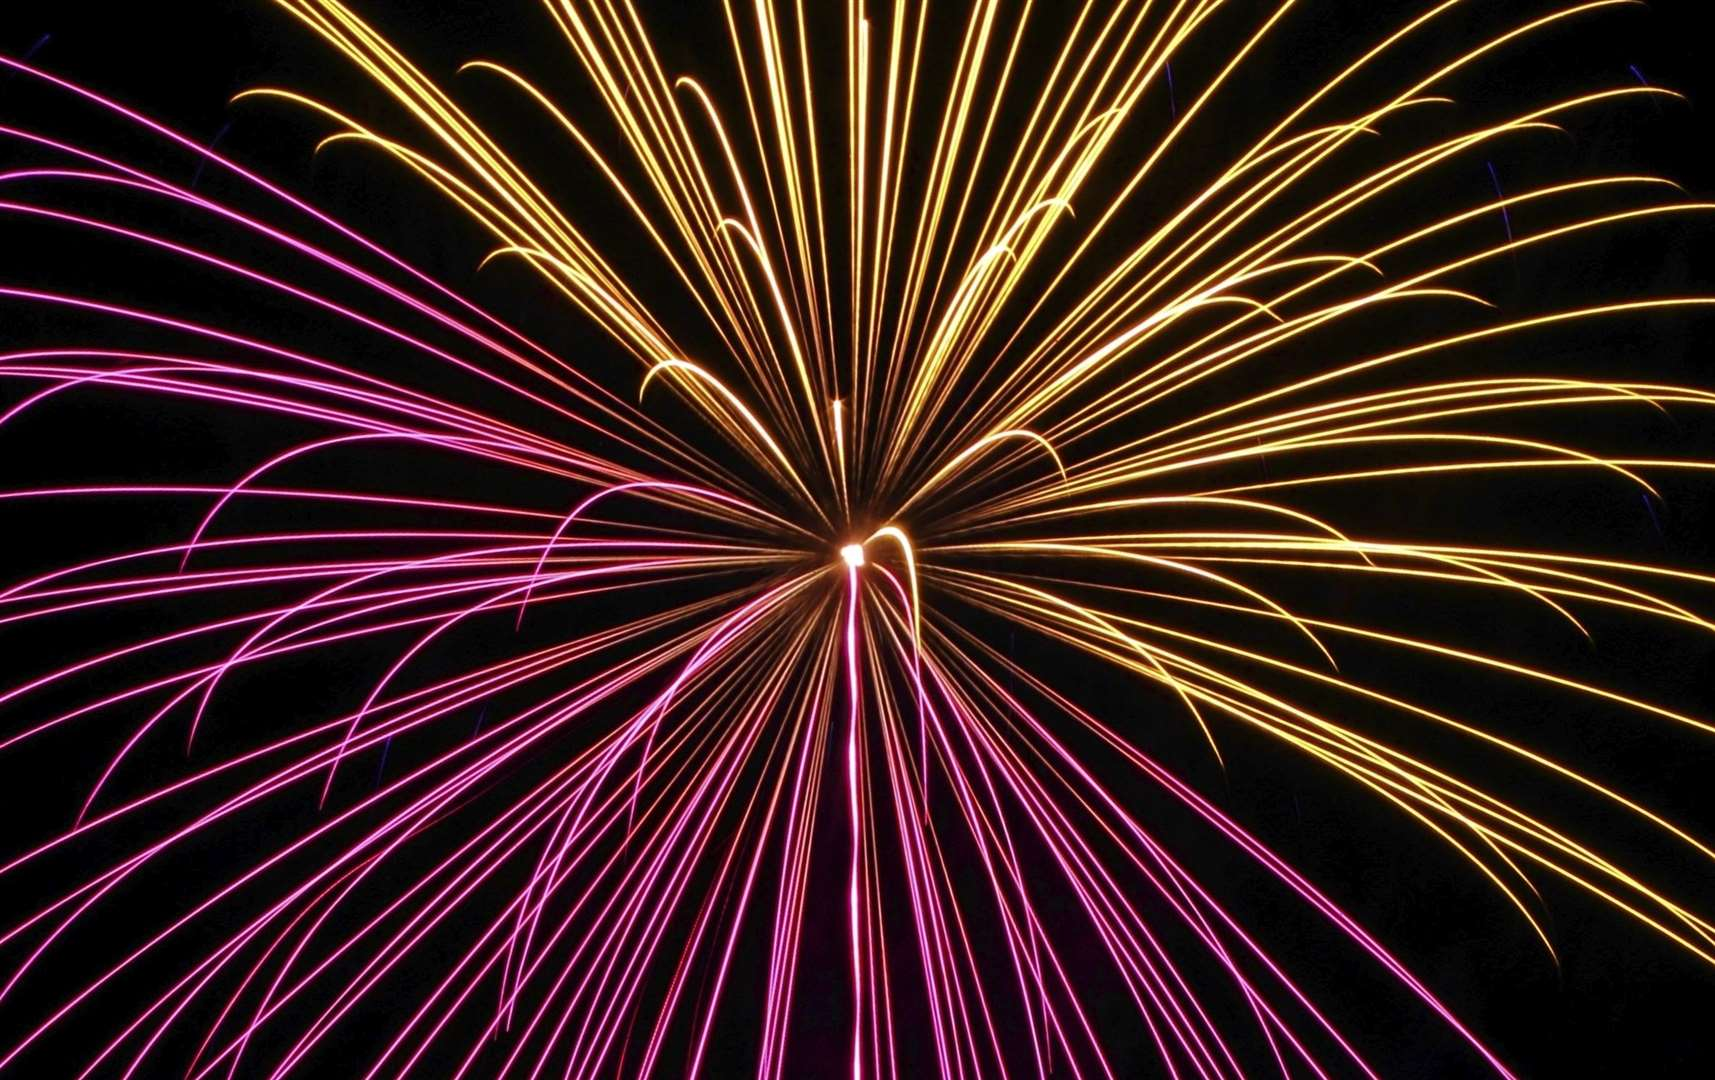 There are still some fireworks displays happening this week